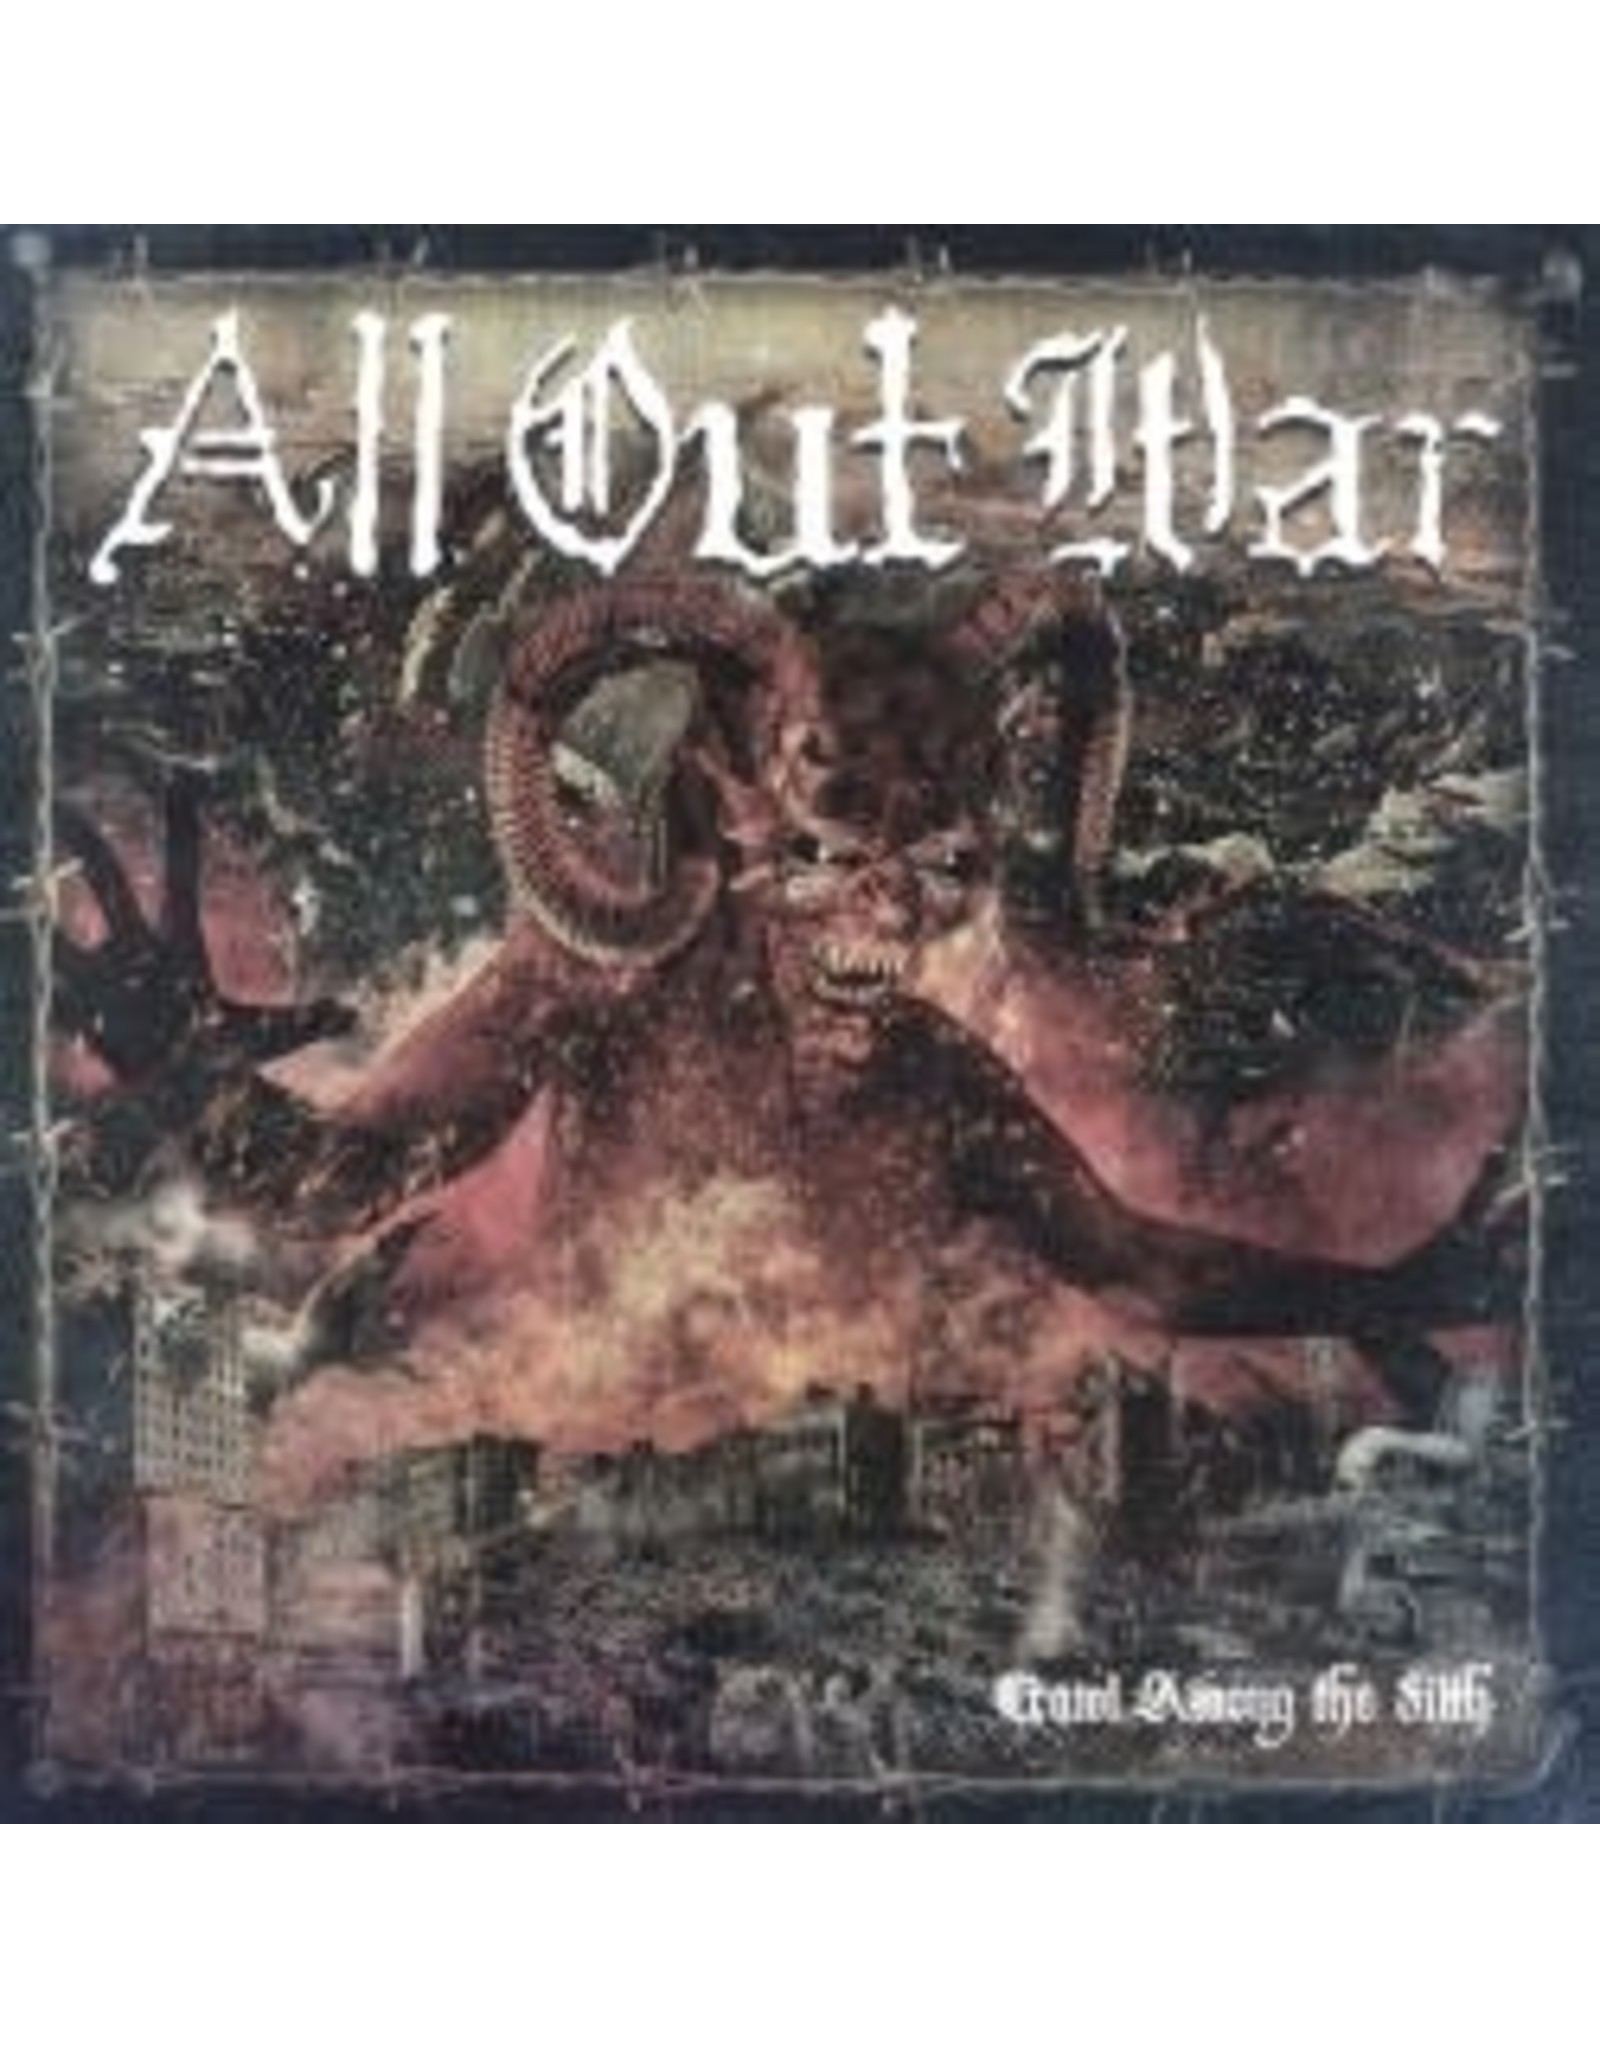 All Out War - Crawl Among the Filth LP